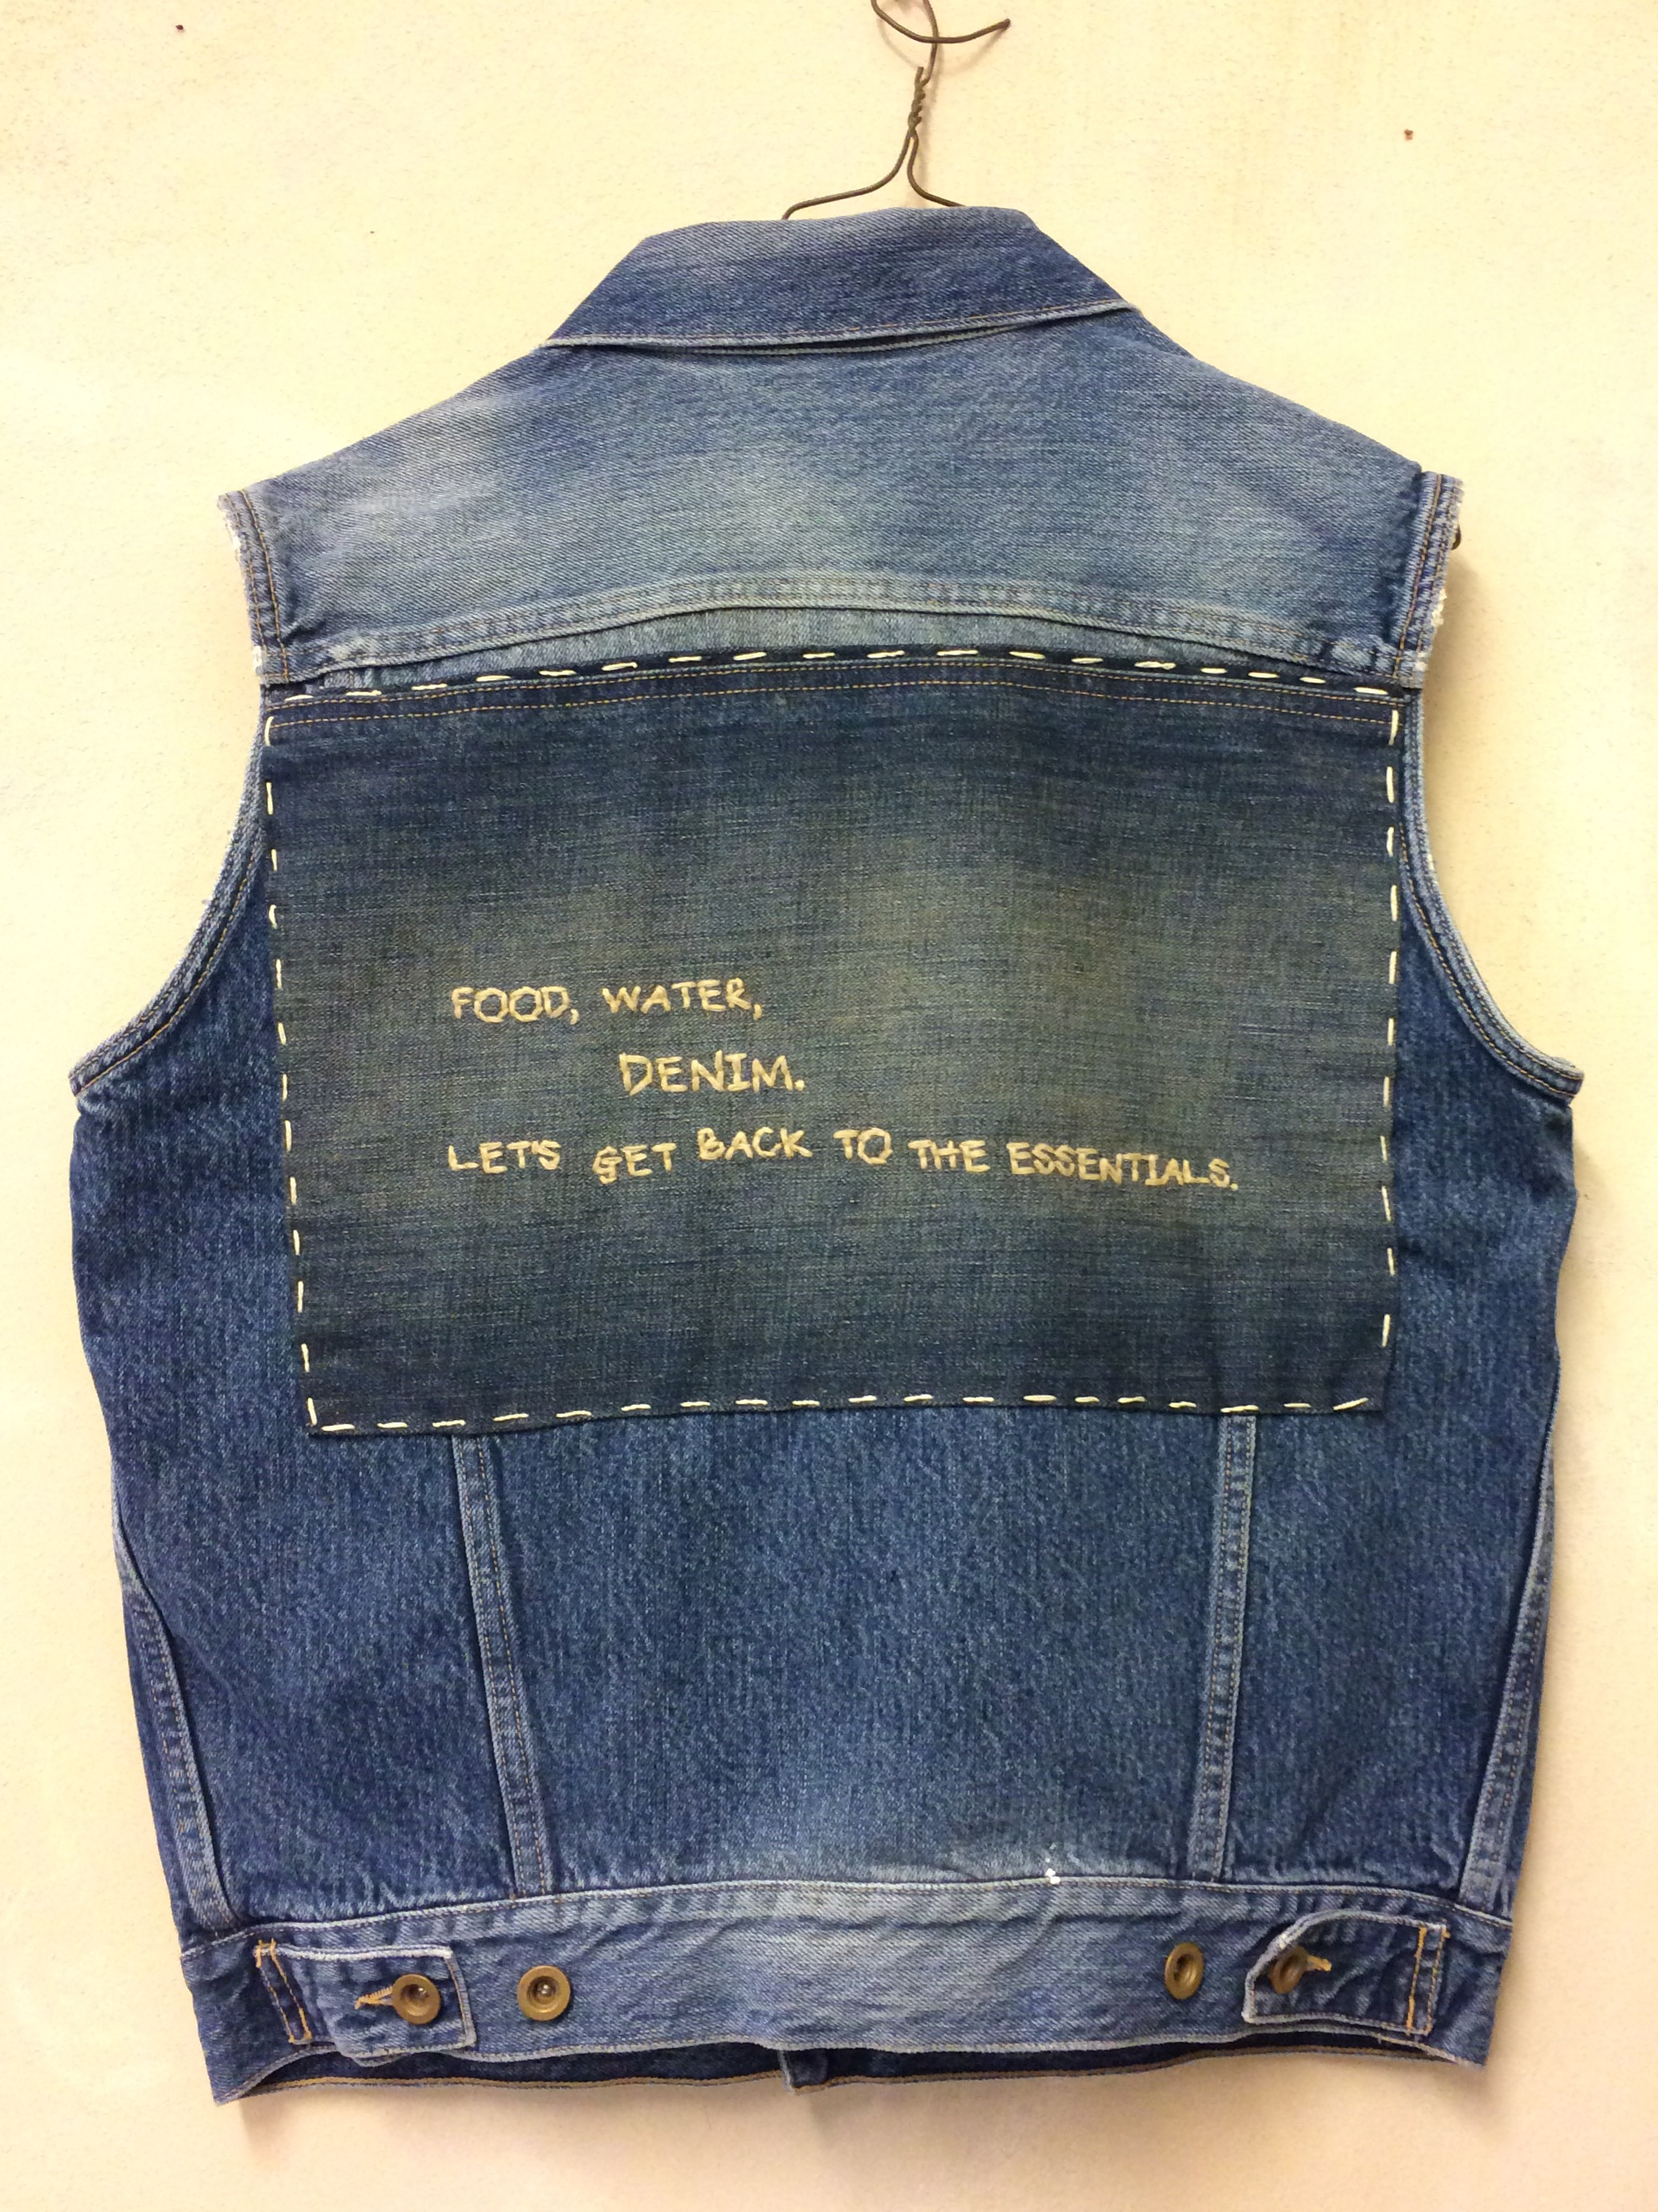 Denim sample in Isko's Creative Room